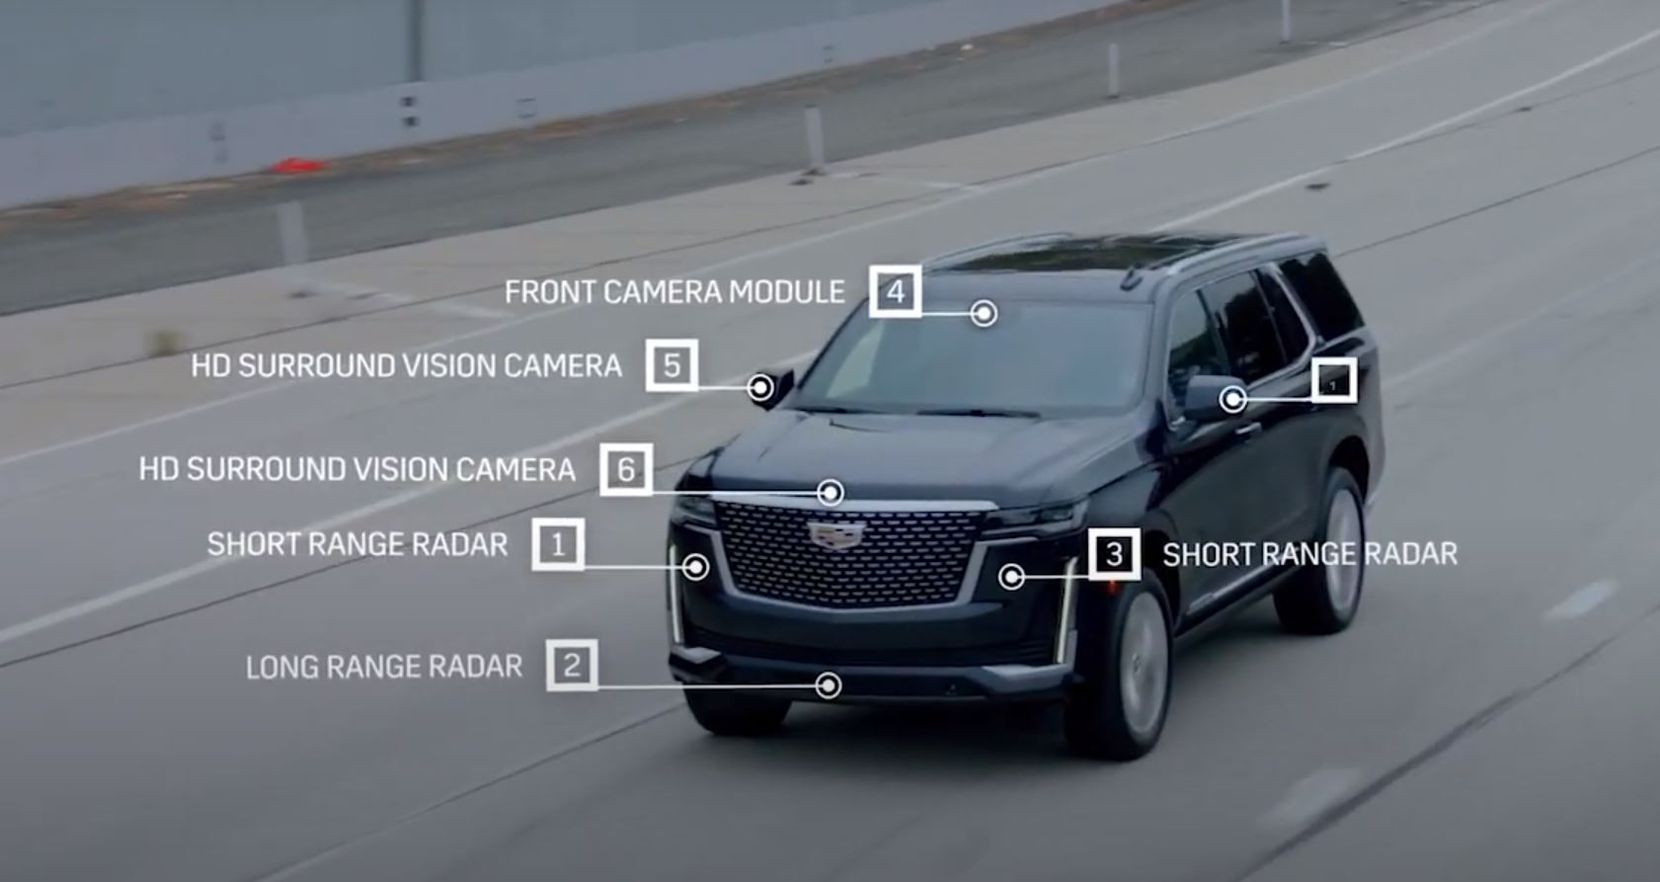 Sensors and cameras help the 2021 Cadillac Escalade drive itself.